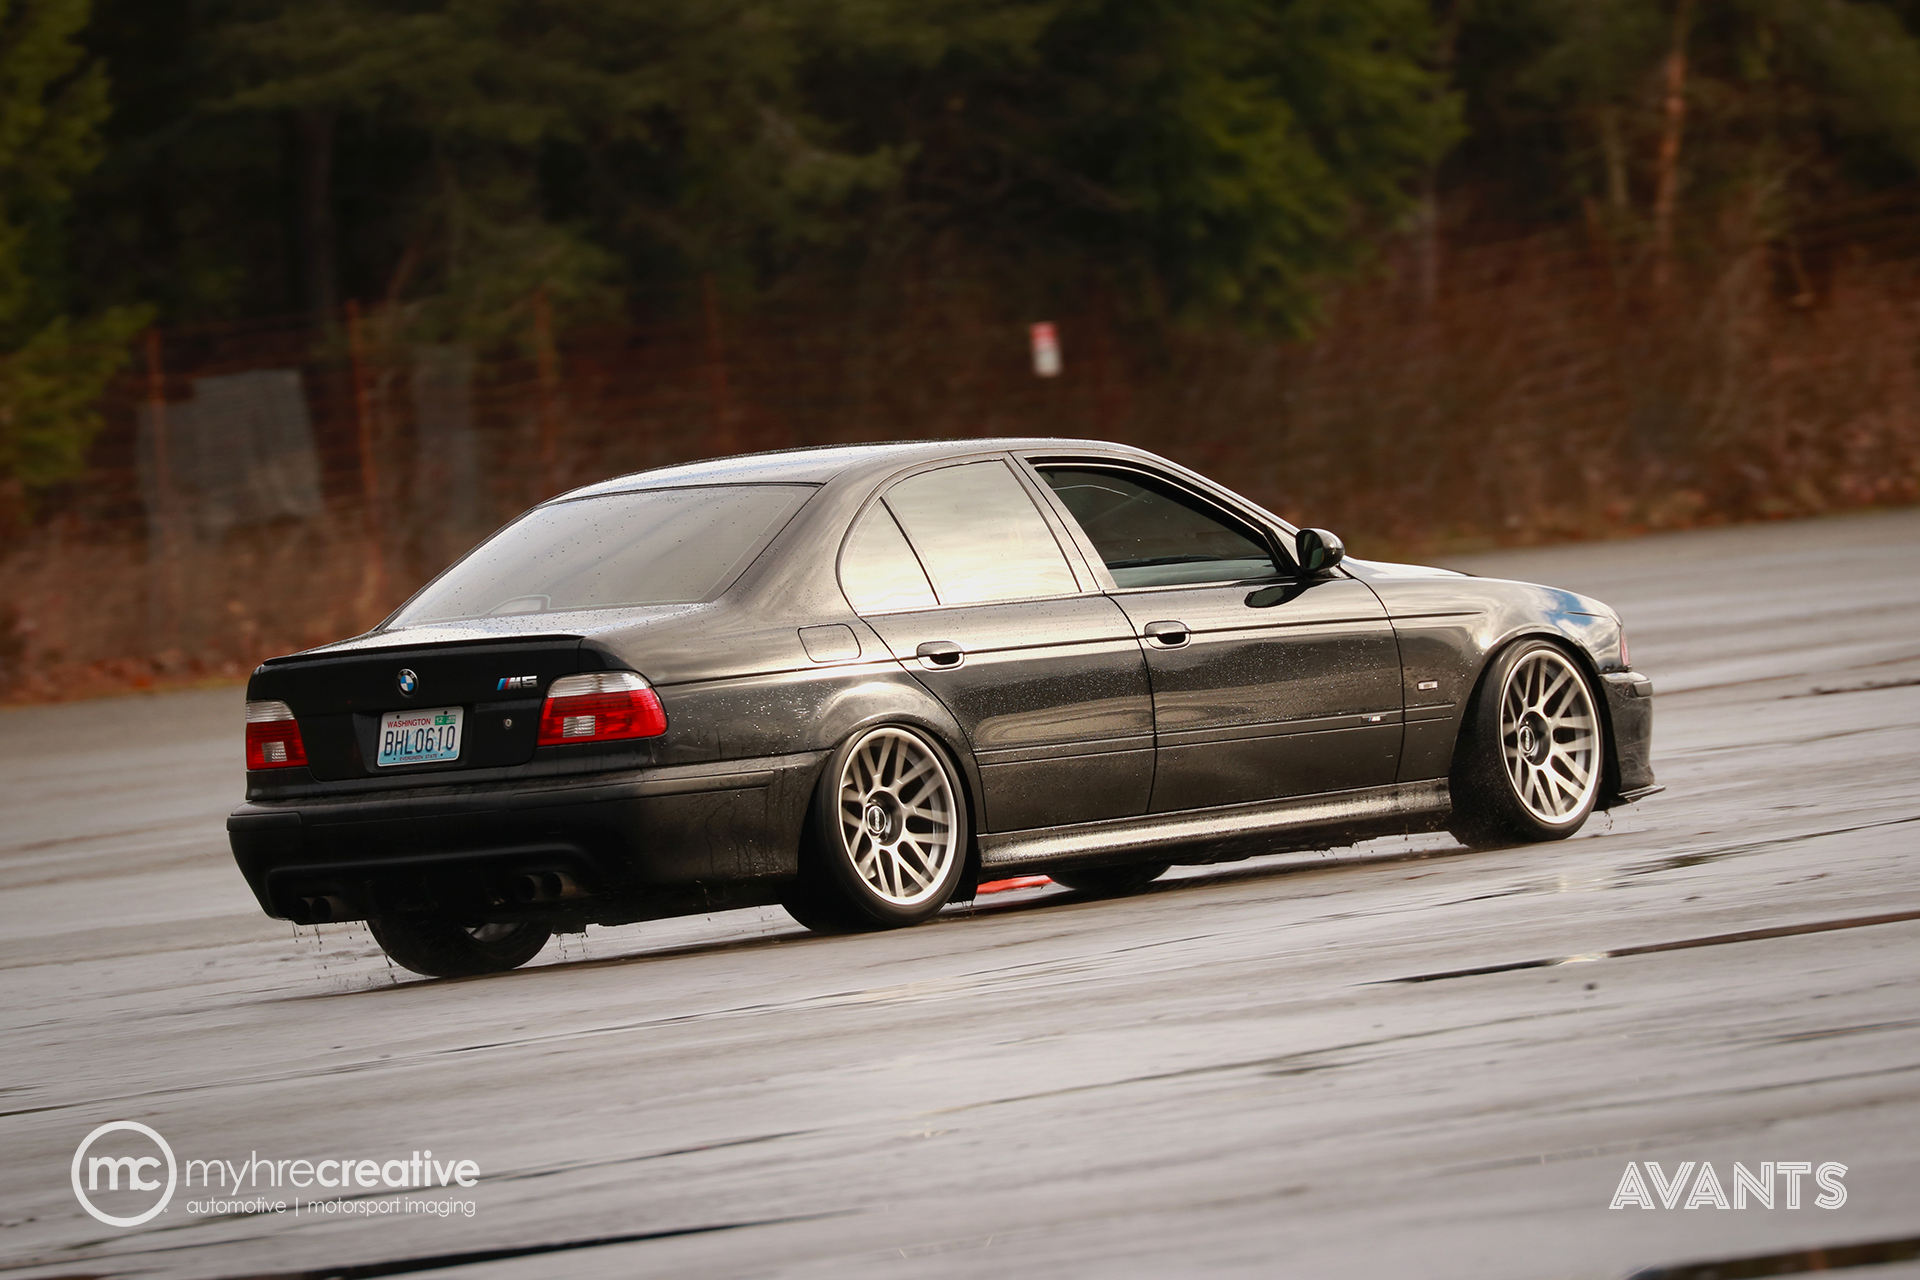 BlackBMW_MyhreCreative_Avants_05_w.jpg